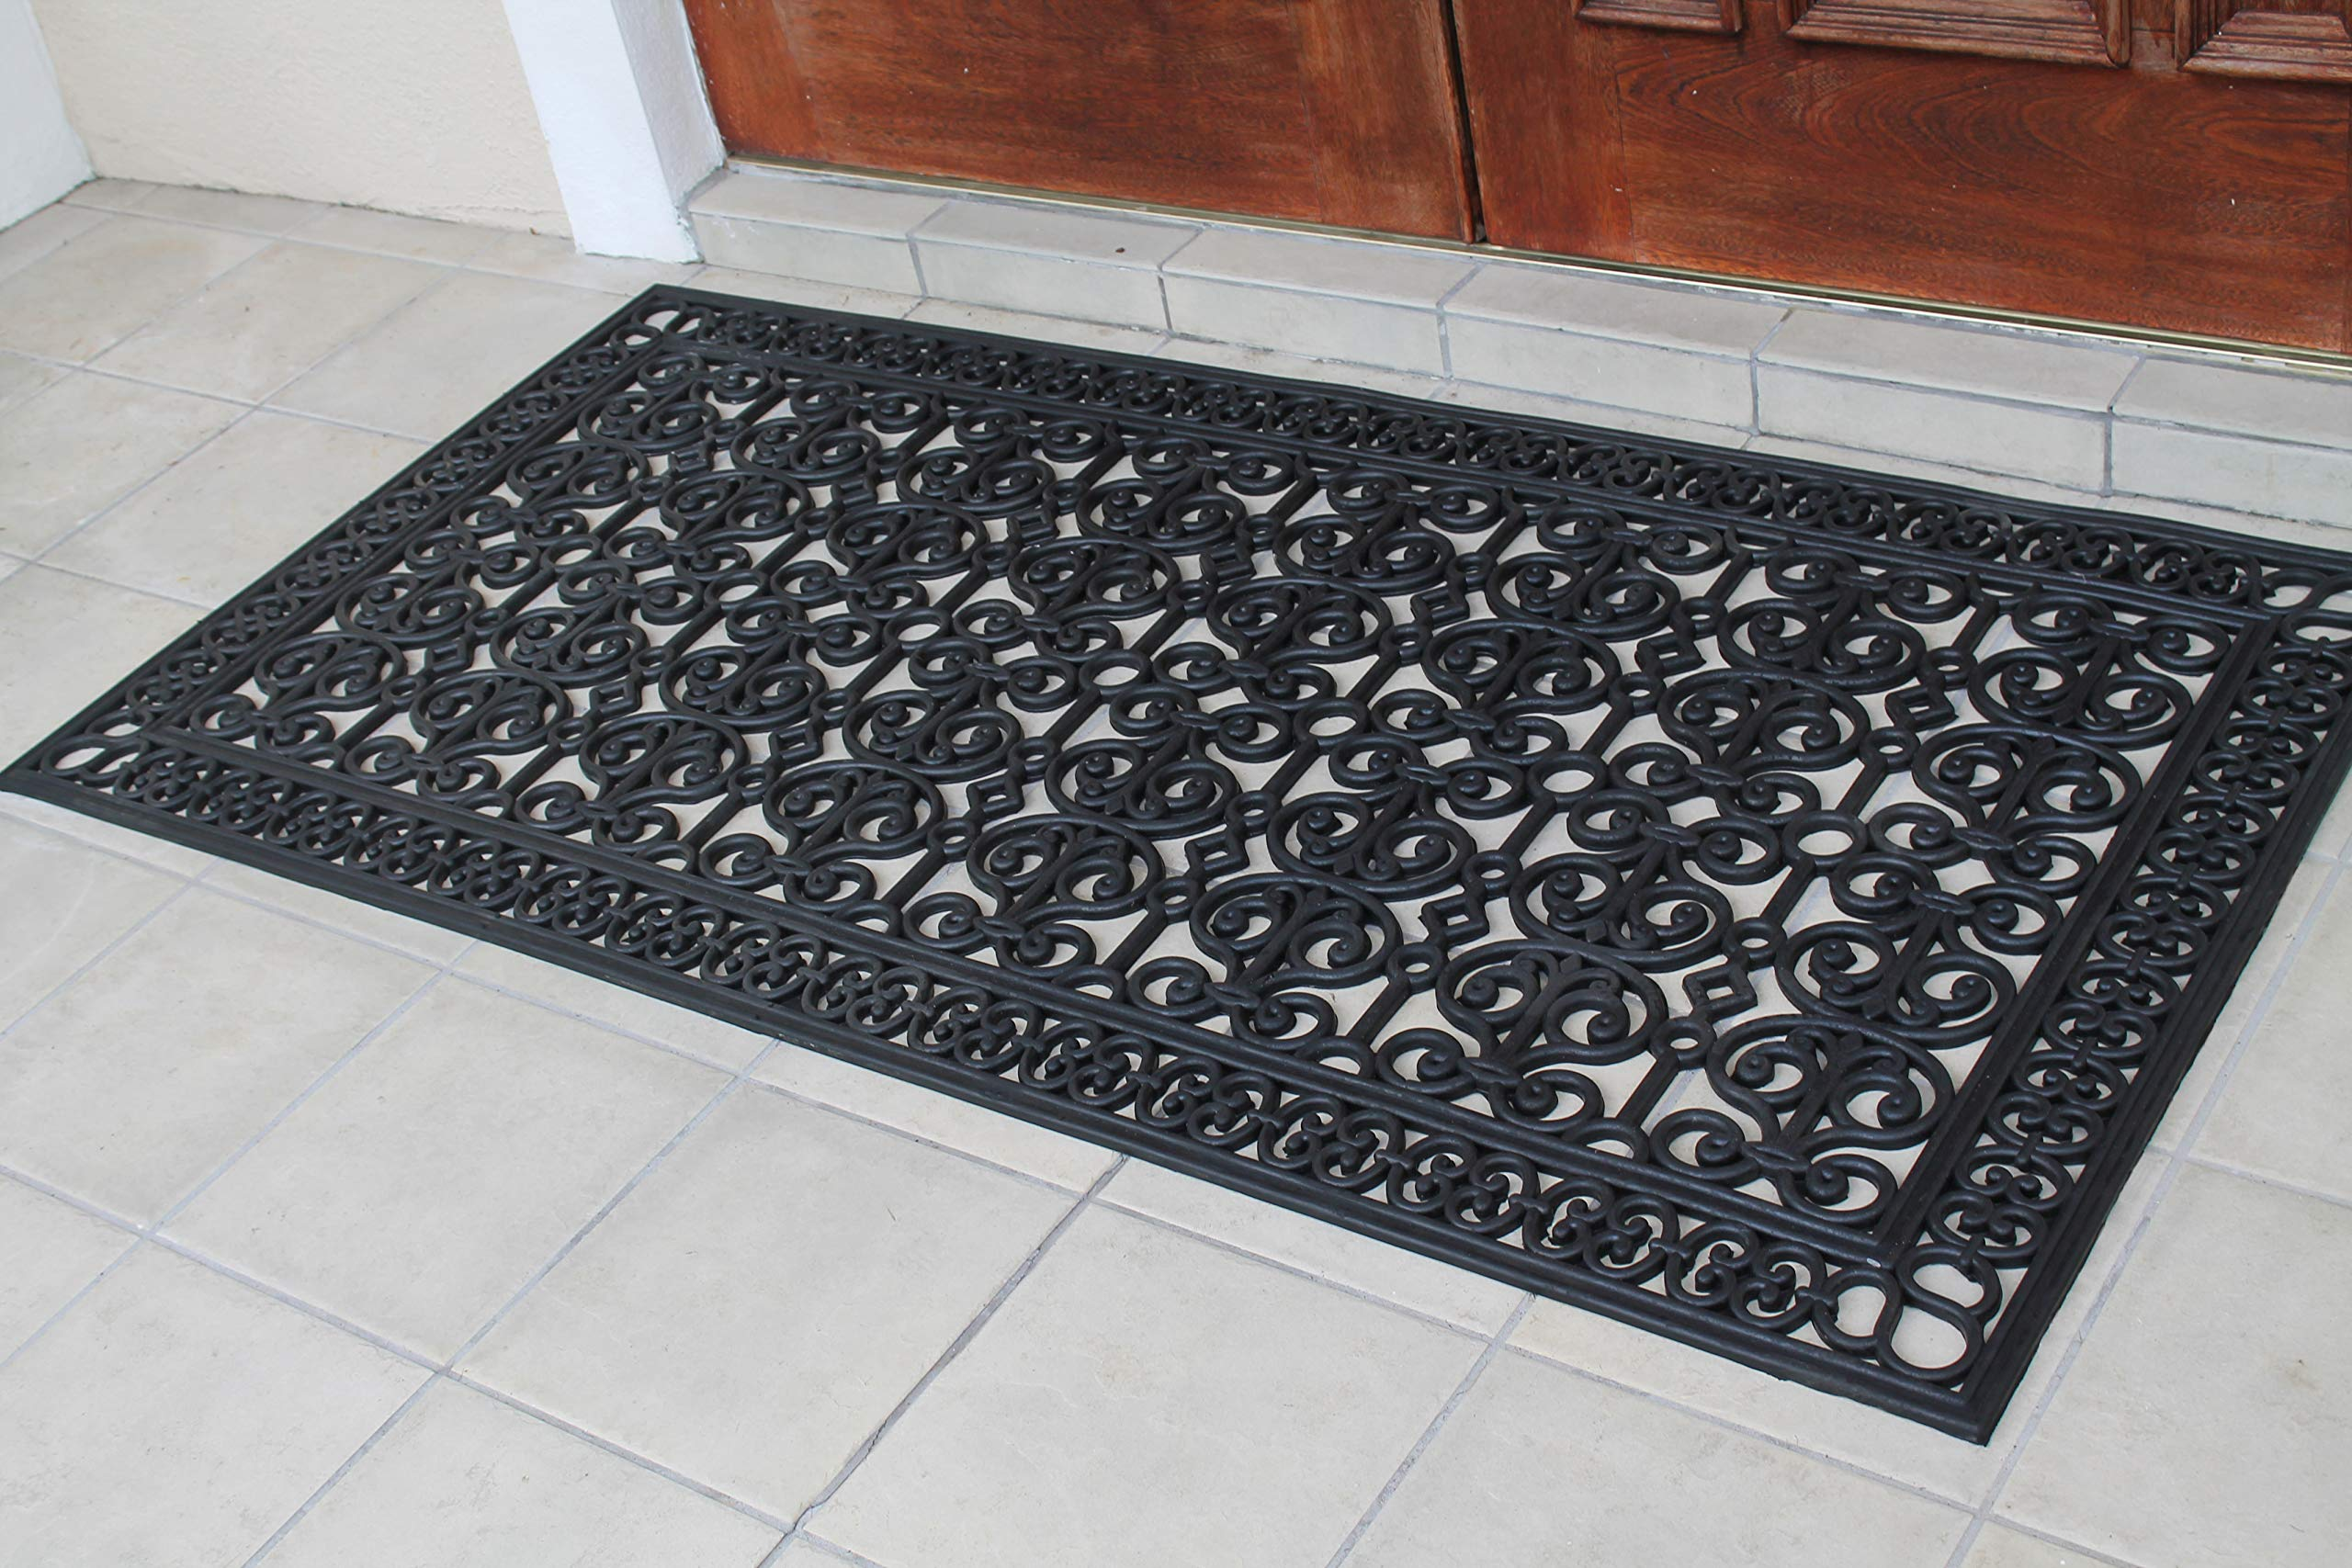 A1 Home Collections A1HCCL68 Doormat A1HC First Impression Rubber Paisley, Beautifully Hand Finished,Thick, 36X72, Black Estate 36'' X 72'' by A1 Home Collections (Image #2)